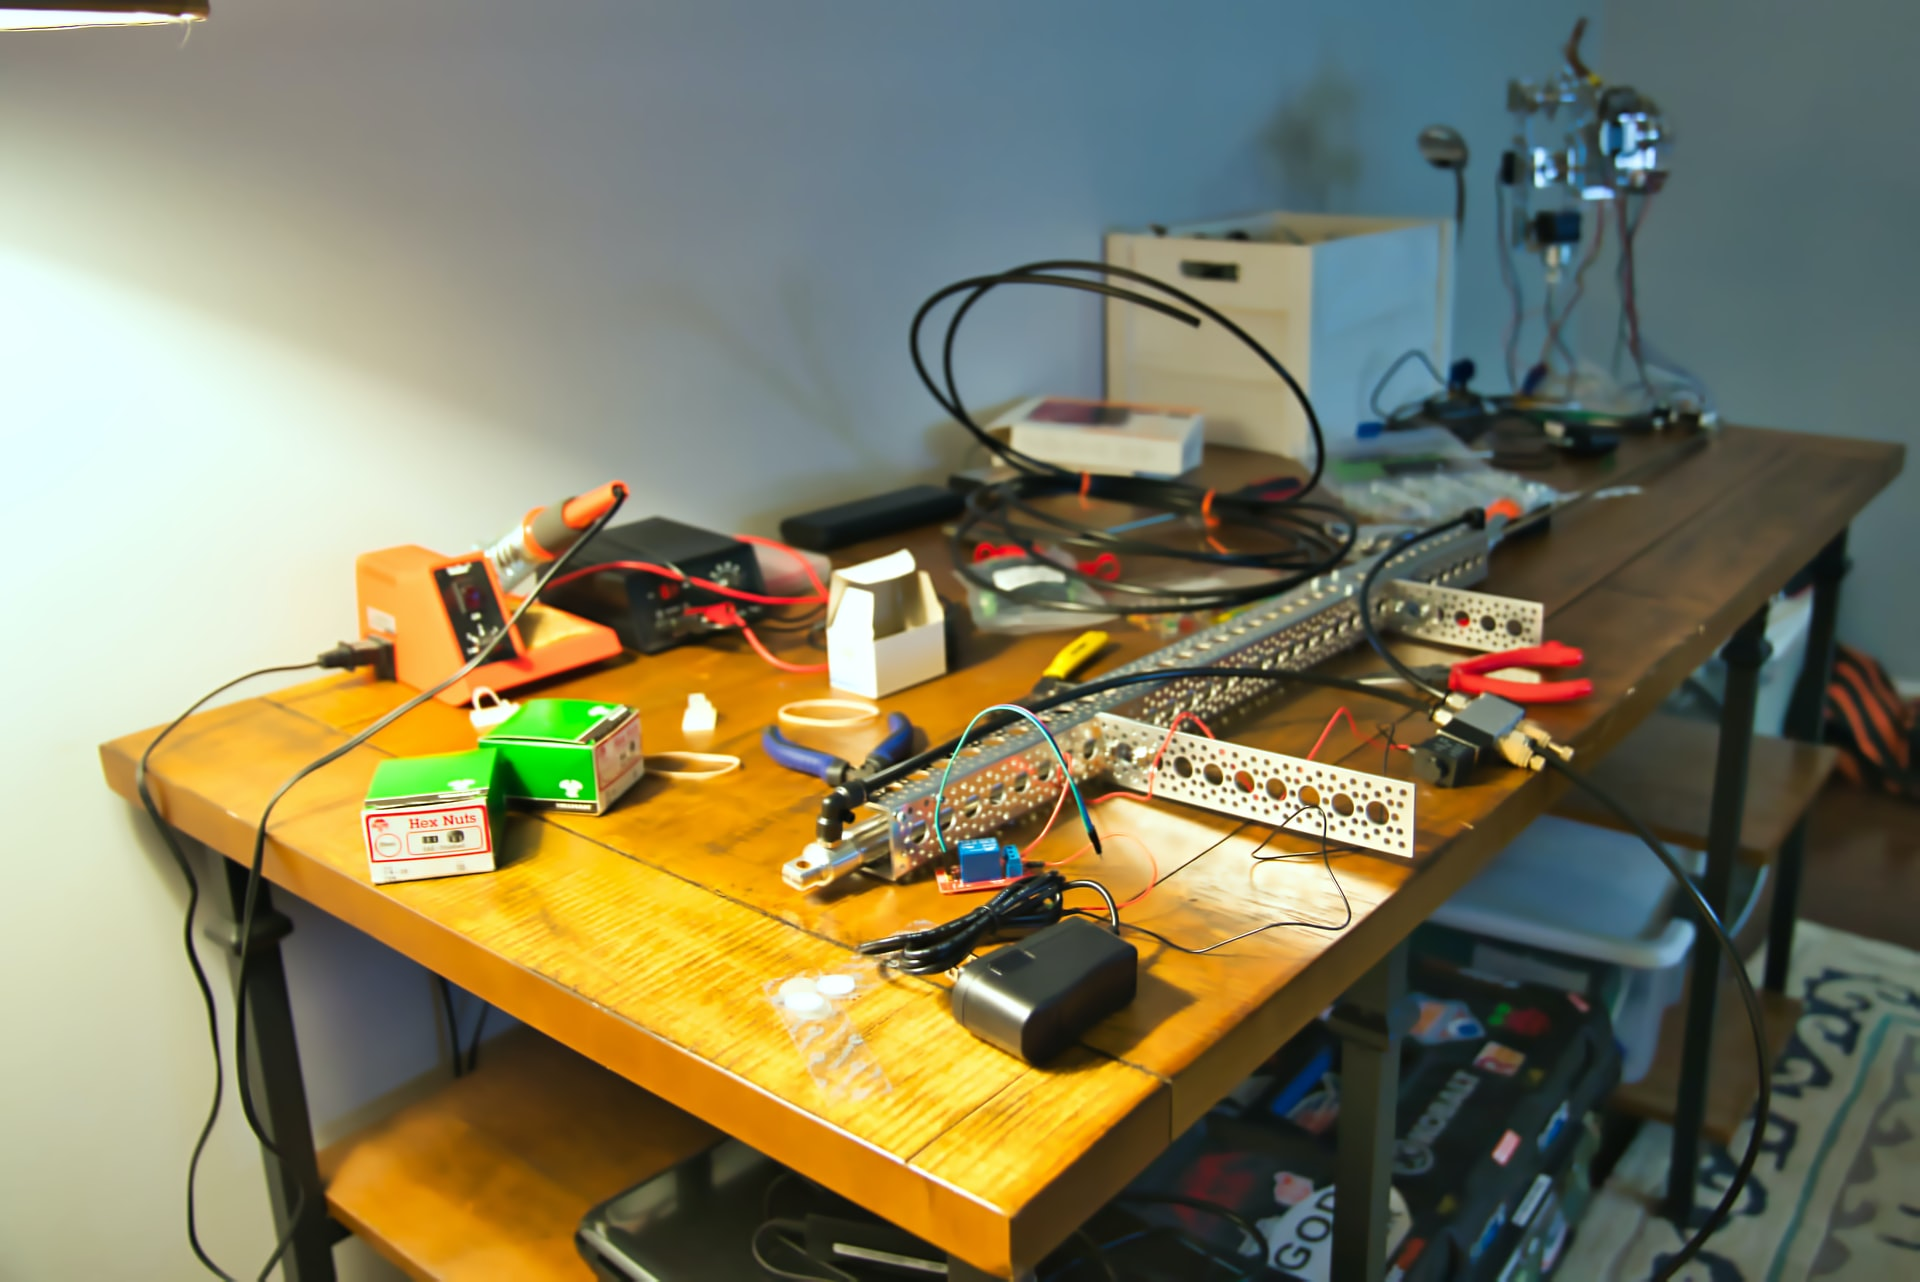 Table with electronics which are being used for making a prototype of an IoT solution